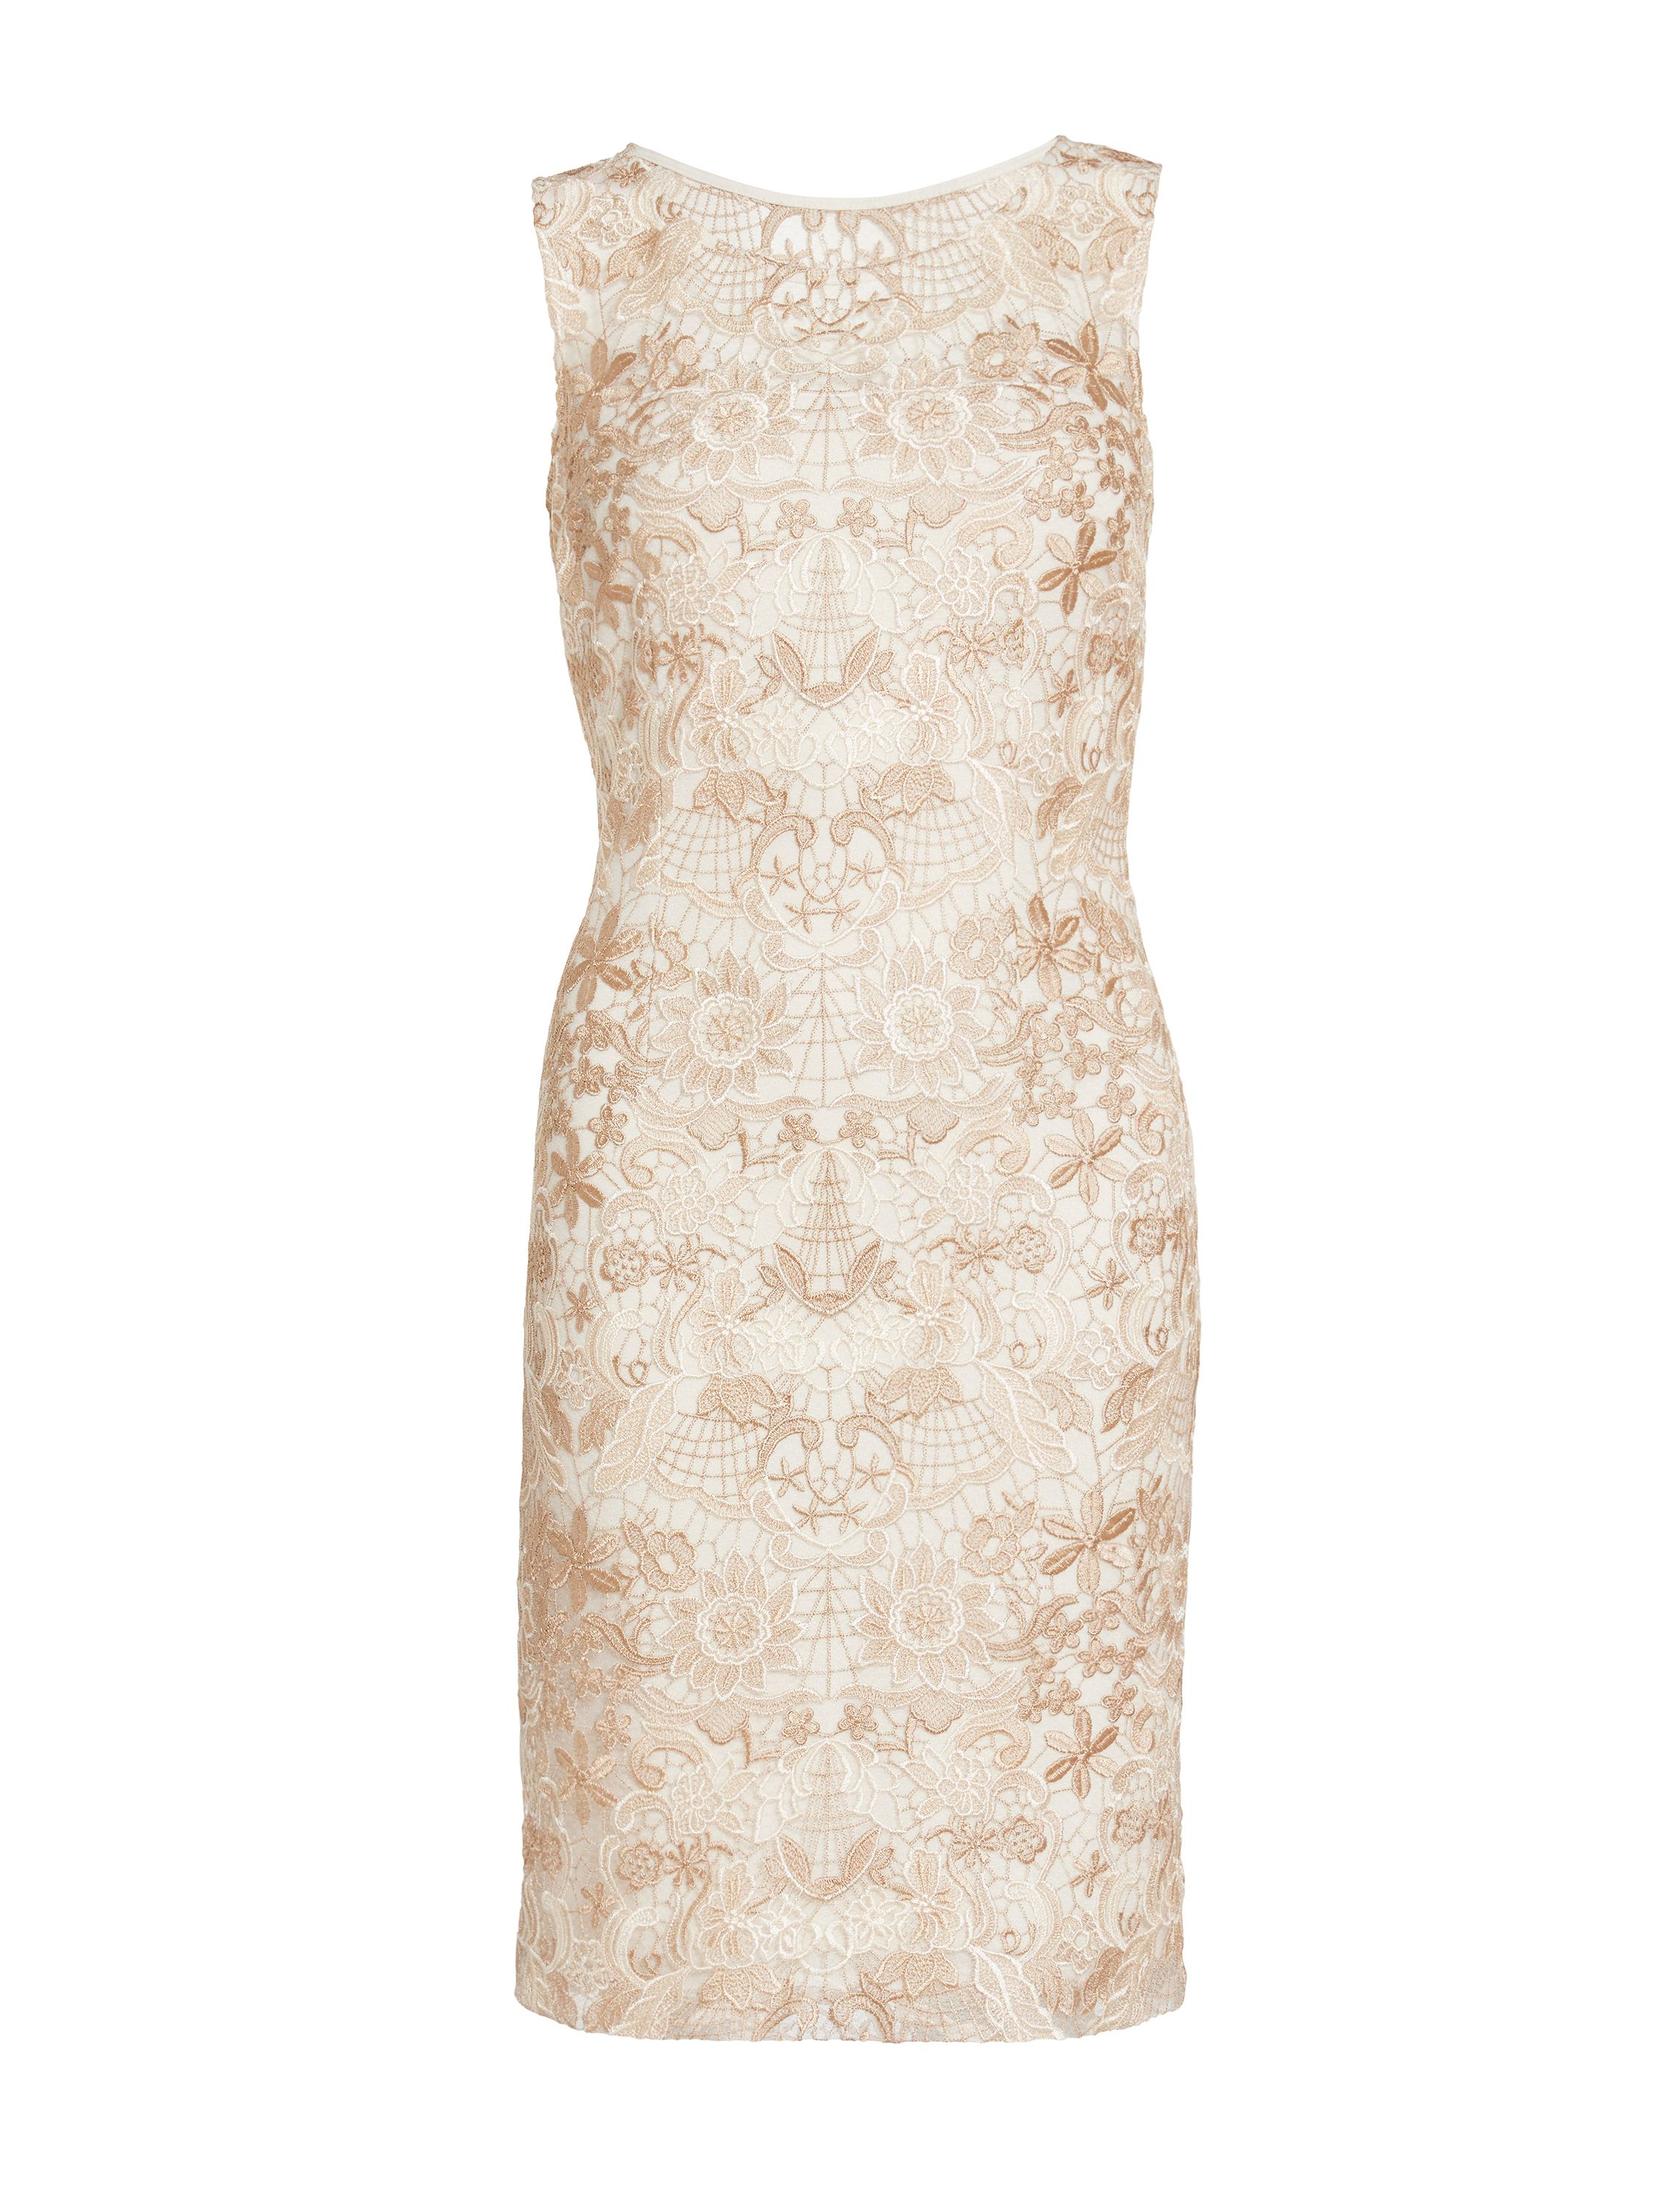 Gina Bacconi Tonal floral embroidered mesh dress, Cream